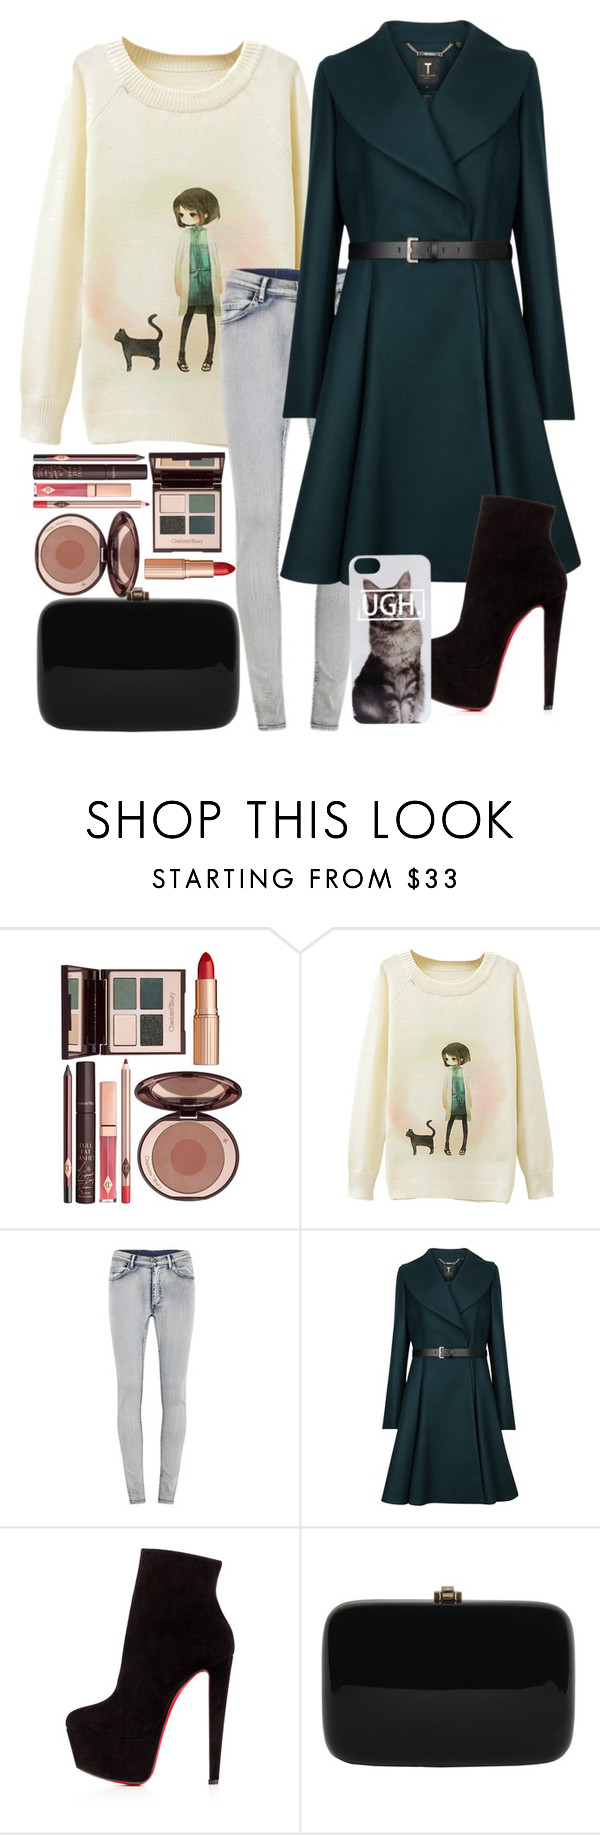 """""""cats"""" by naty2001 ❤ liked on Polyvore featuring Charlotte Tilbury, Cheap Monday, Ted Baker, Christian Louboutin and Rocio"""